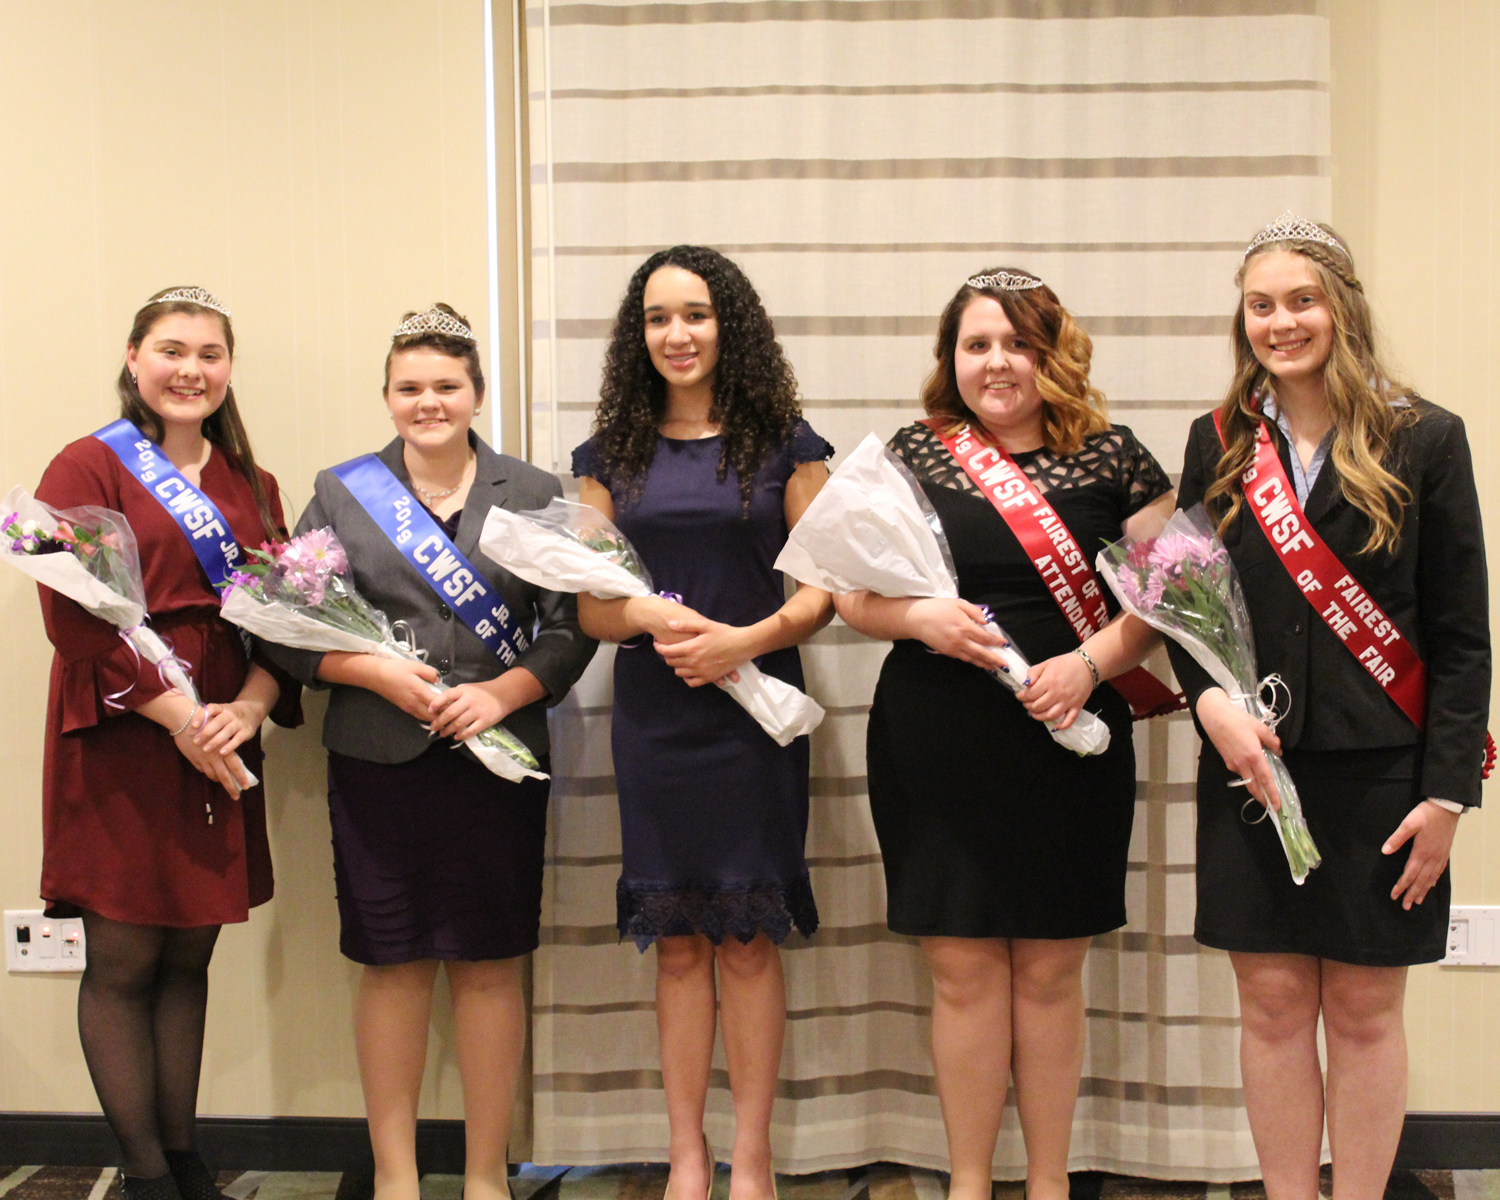 2019 CWSF Fairest of the Fair